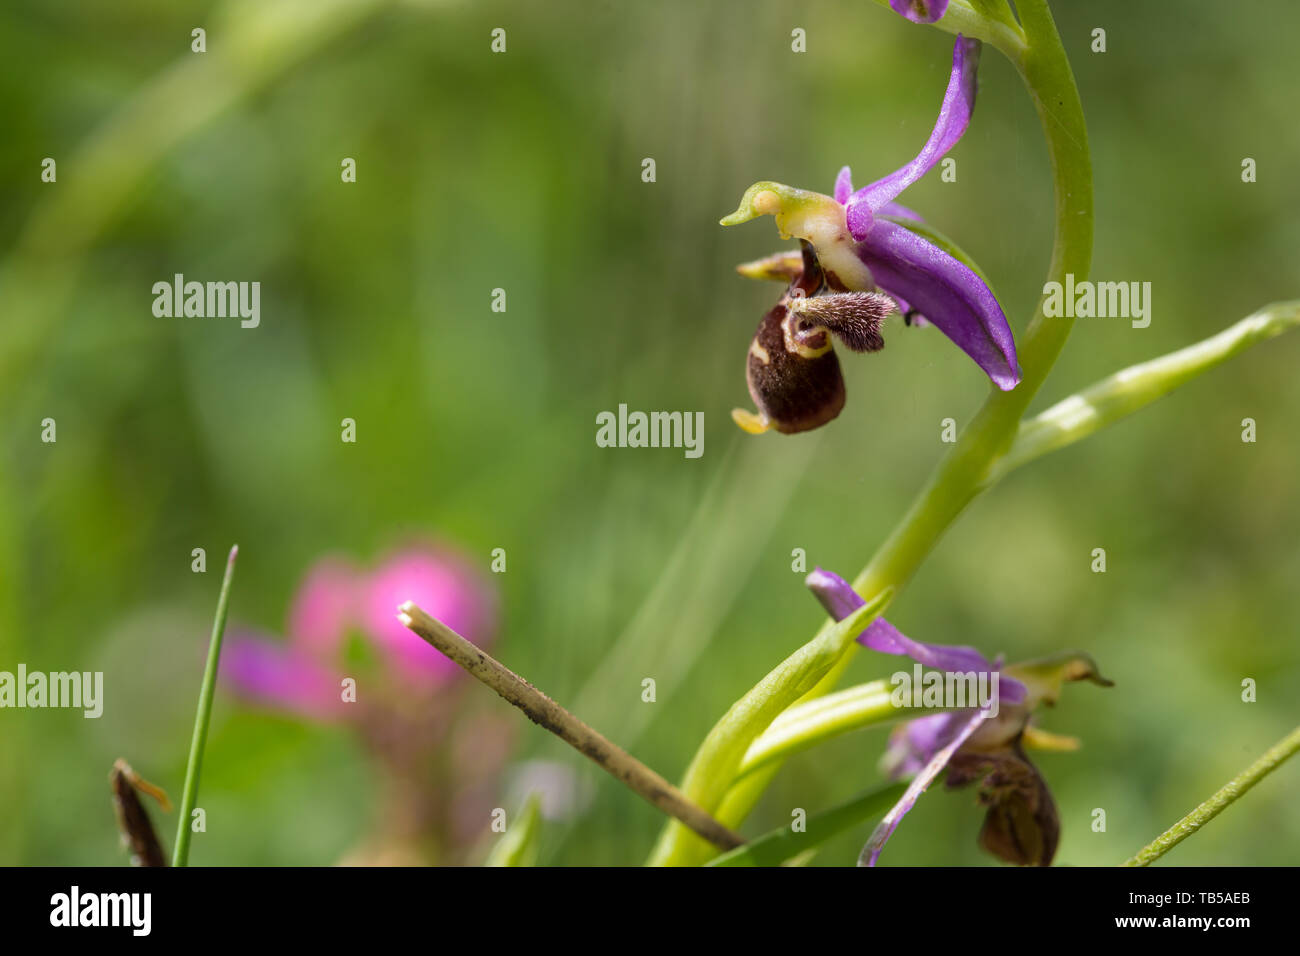 Hari bulbul plant of the Orchid family. Wild plant in habitat in the mountains of the Caucasus, Azerbaijan. - Stock Image